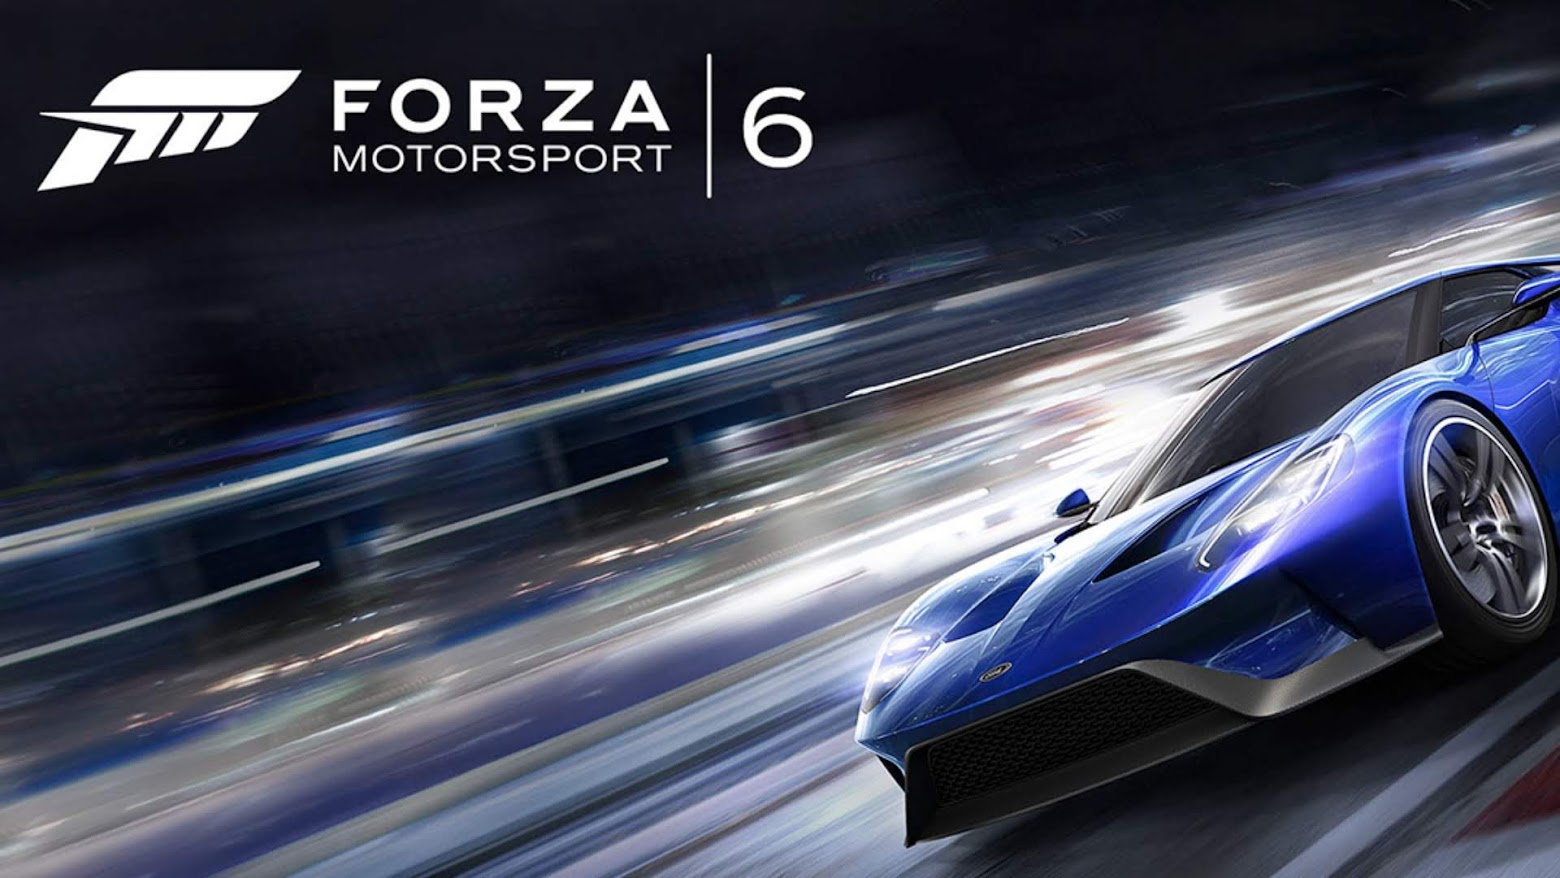 Forza Motorsport 6 poster